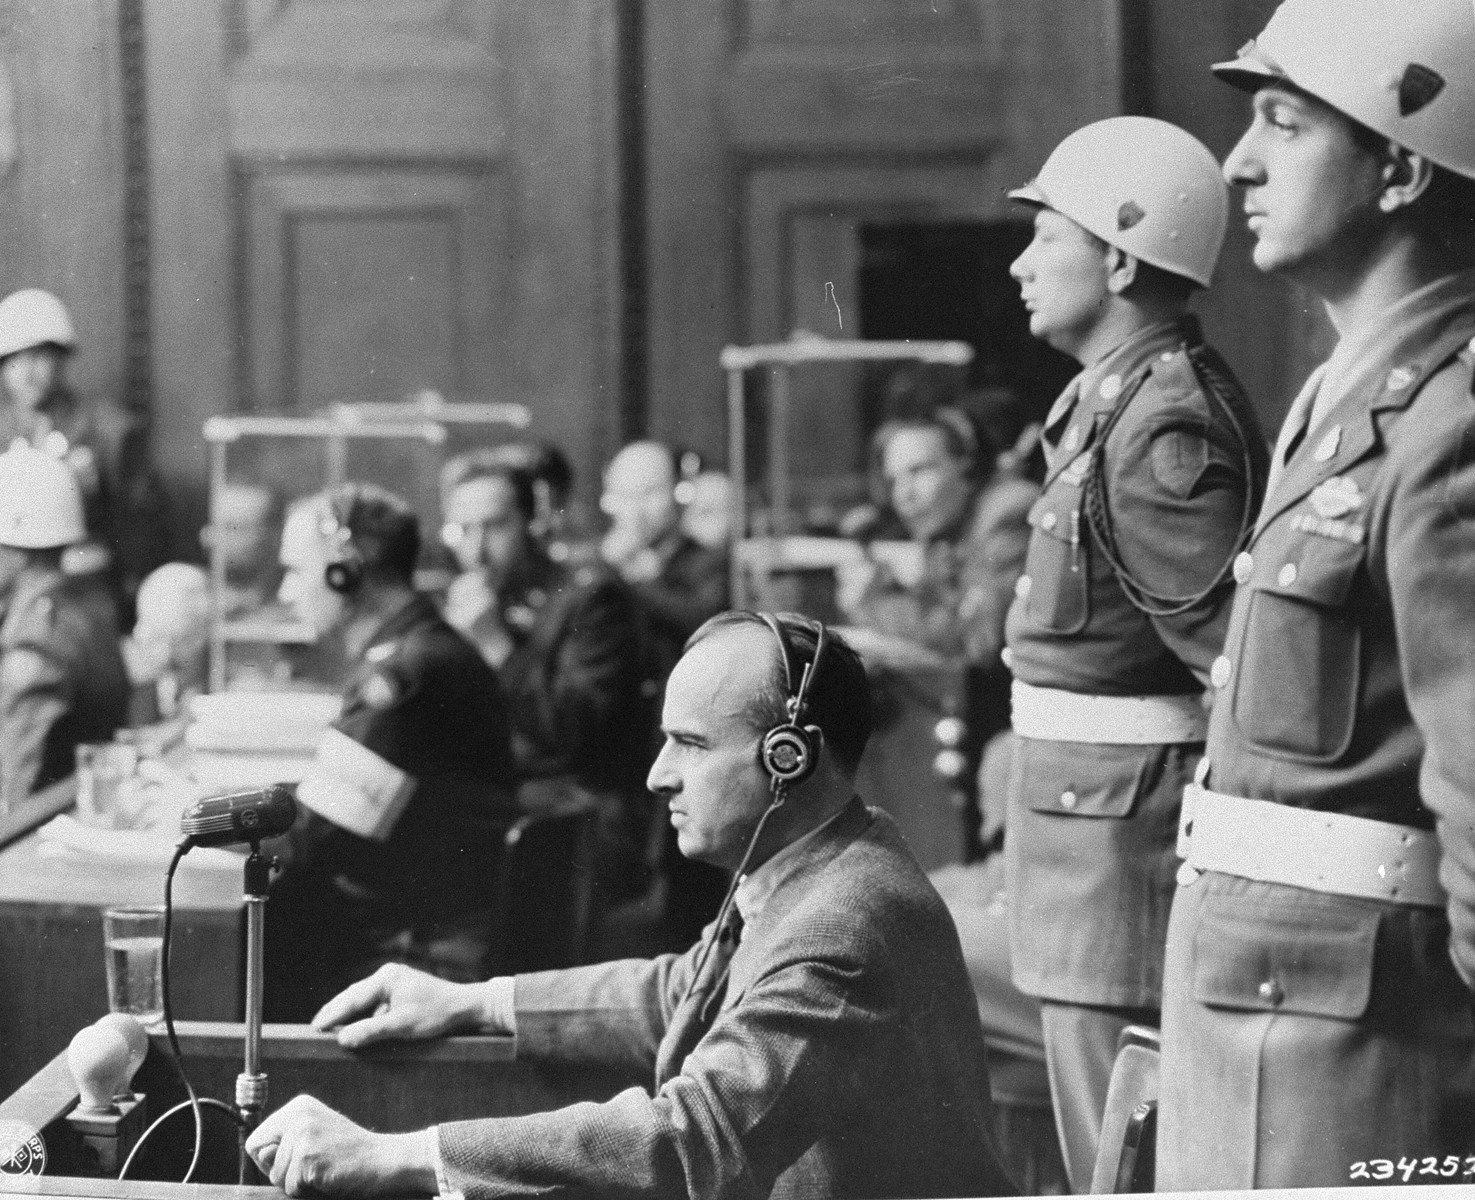 Hans Frank, the former Nazi Governor General of Poland, in the witness box at the International Military Tribunal trial of war criminals at Nuremberg.